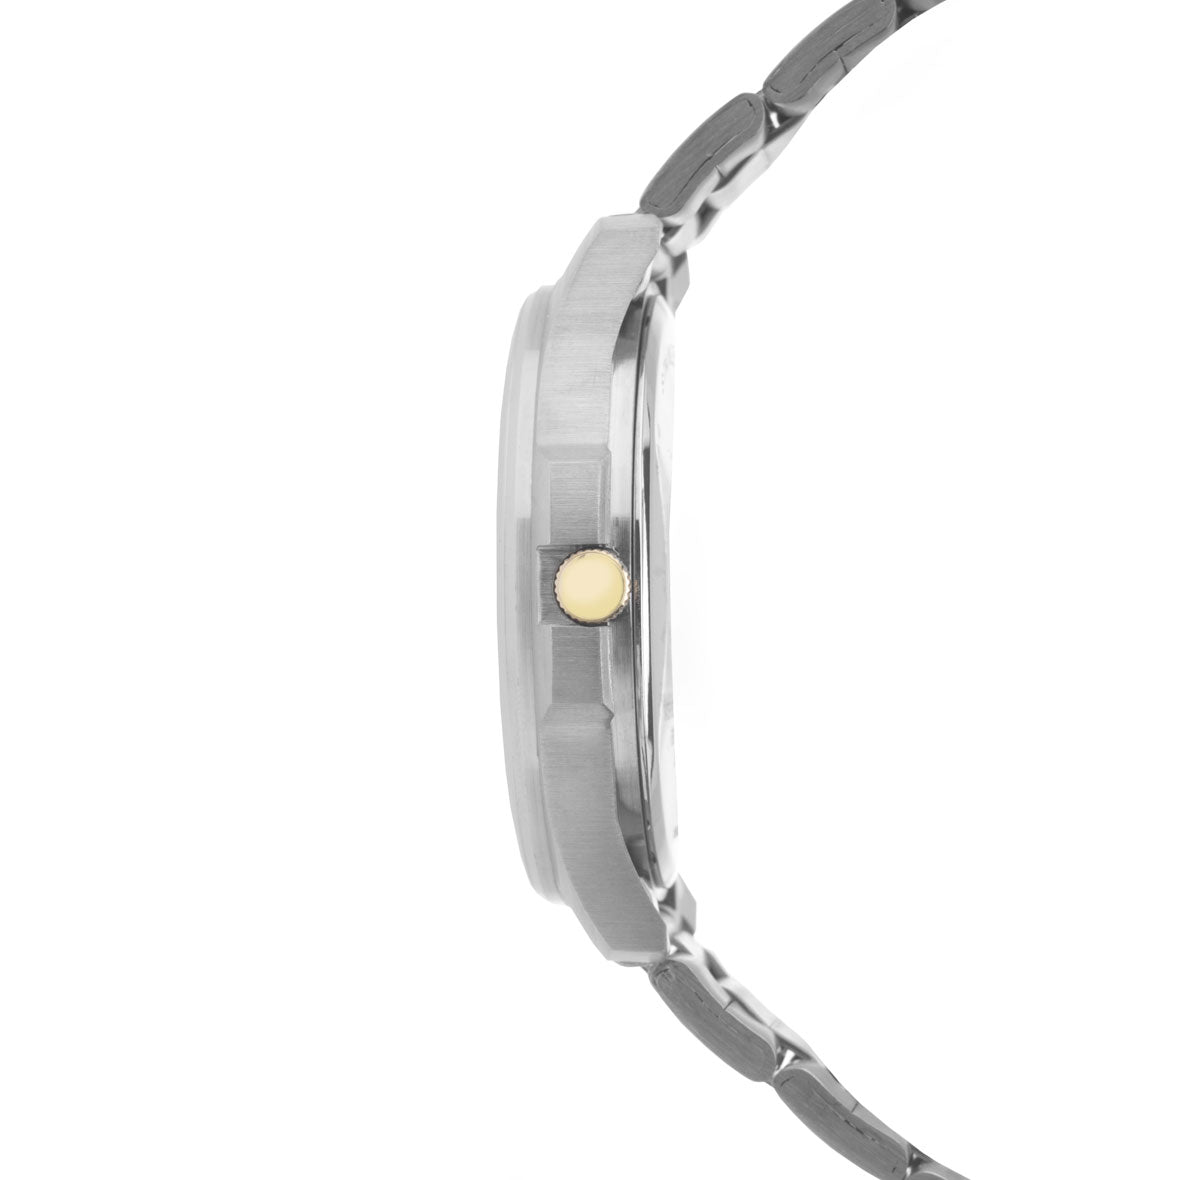 f627ab37c961 1440 Front View  1440 Side View  1440 Back View. Classic meets contemporary  with this men s bold wristwatch.